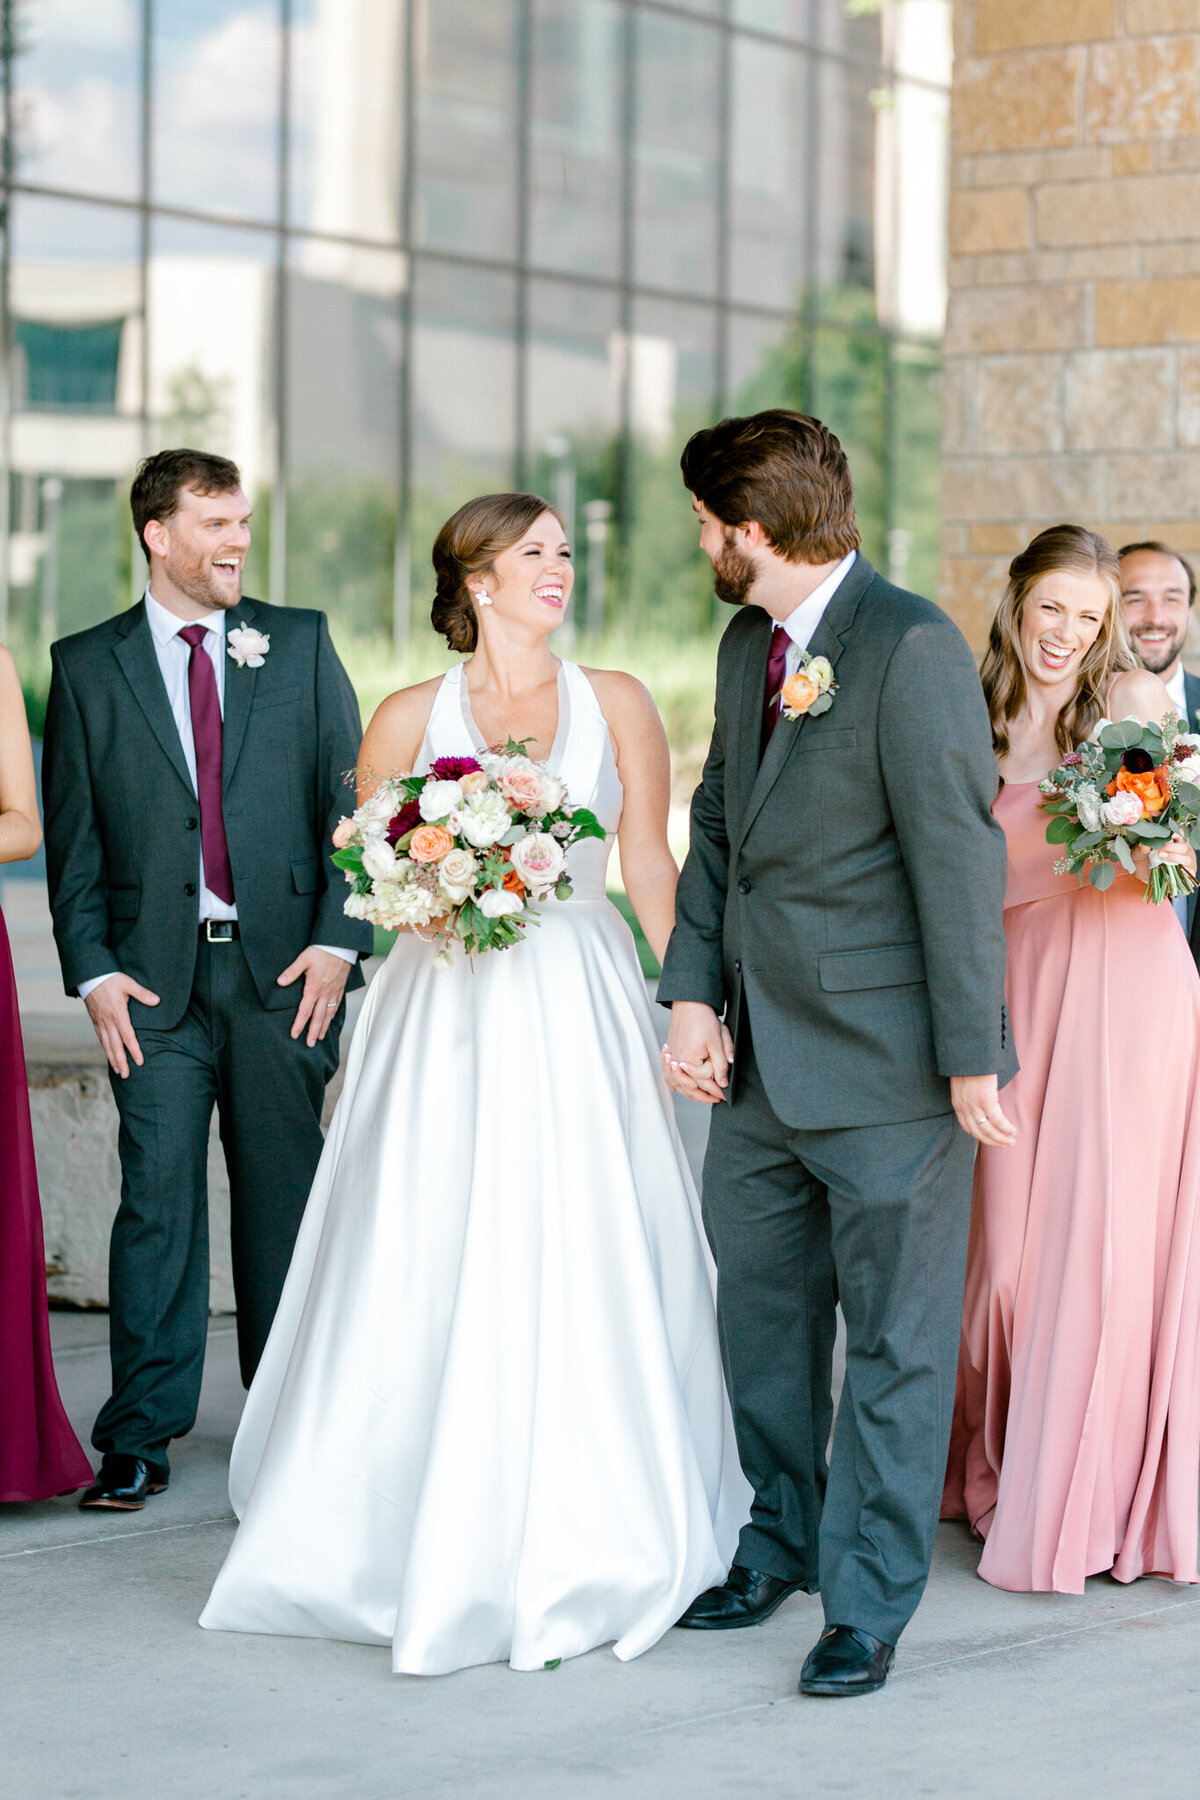 Kaylee & Michael's Wedding at Watermark Community Church | Dallas Wedding Photographer | Sami Kathryn Photography-88